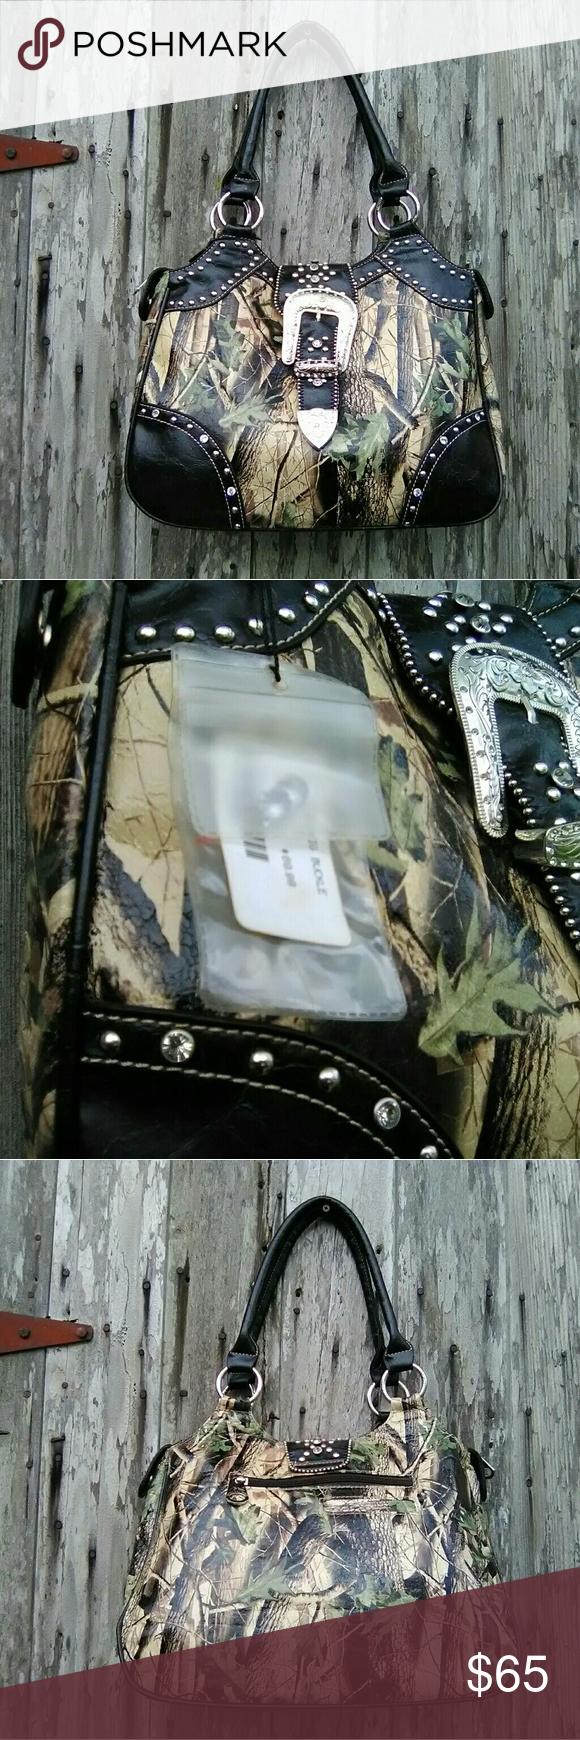 NWT Montana West shoulder bag New Montana West large leather camo print double handle shoulder bag Approximately 14 x 10 and 45 in deep Montana West Bags Hobos